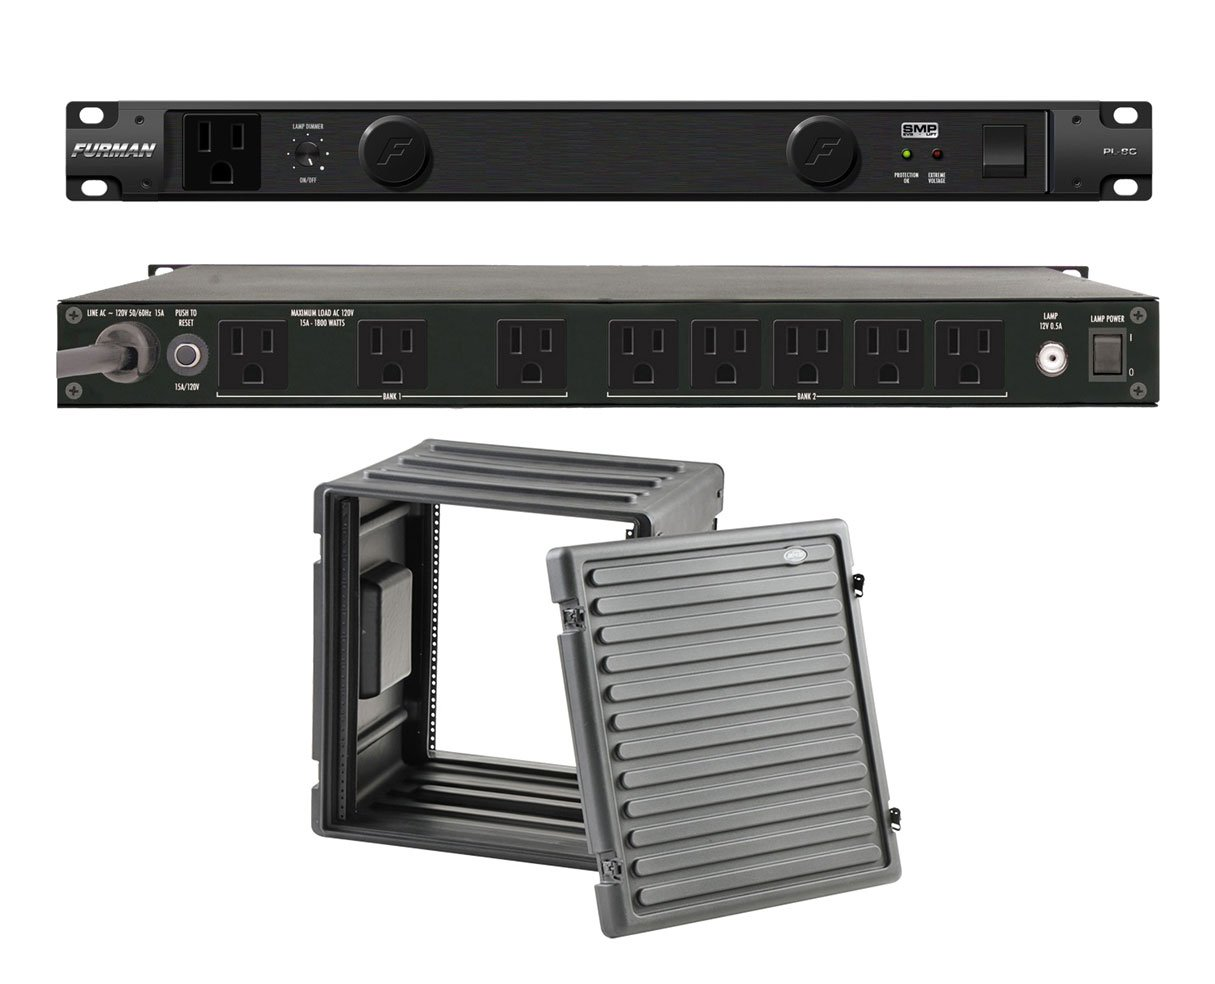 Furman PL-8 C Rack Mount Power Conditioner + SKB 1SKB-R12U Roto Molded 12U Rack